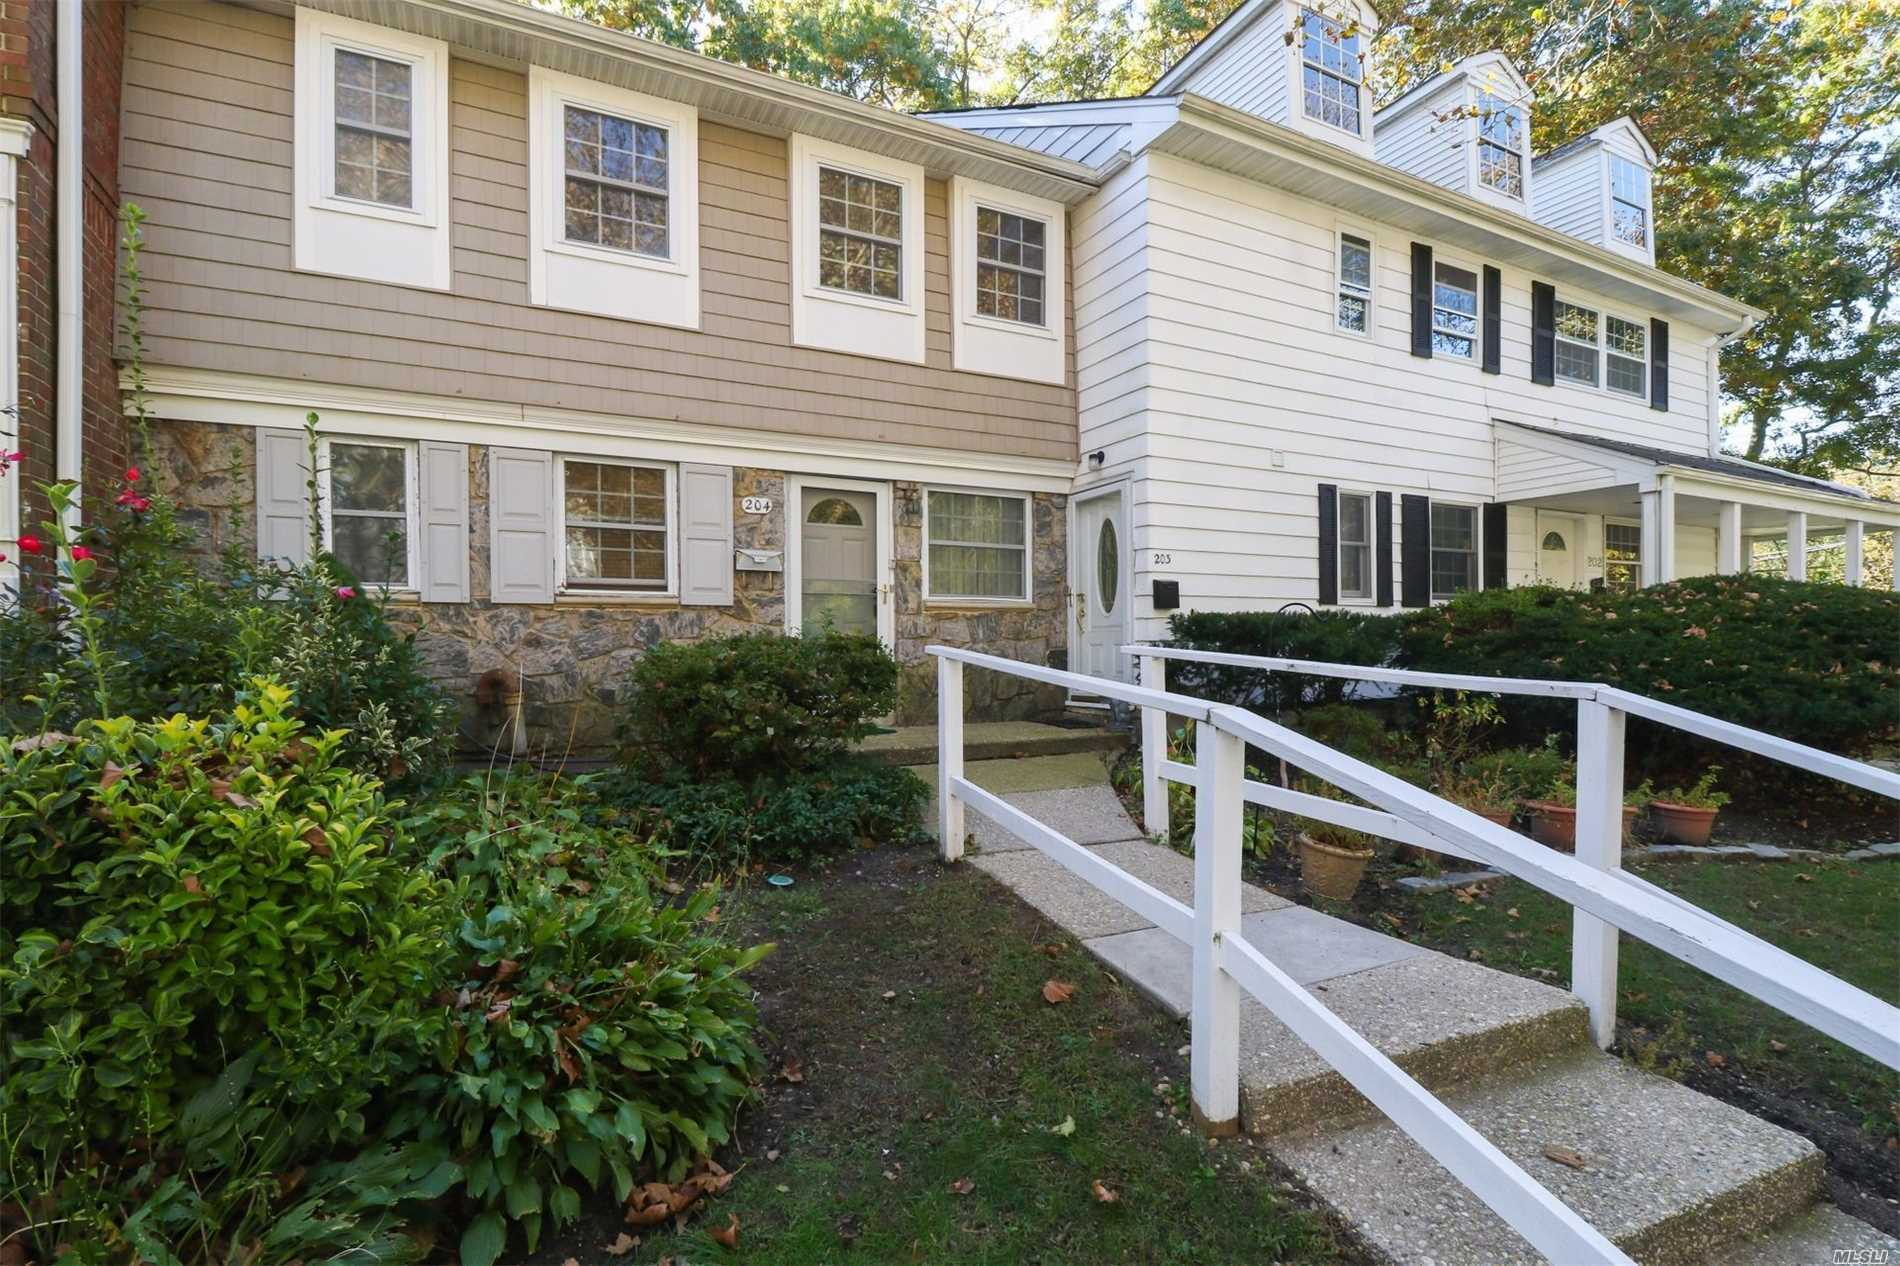 Property for sale at 204 Towne House Vlg, Hauppauge,  NY 11749